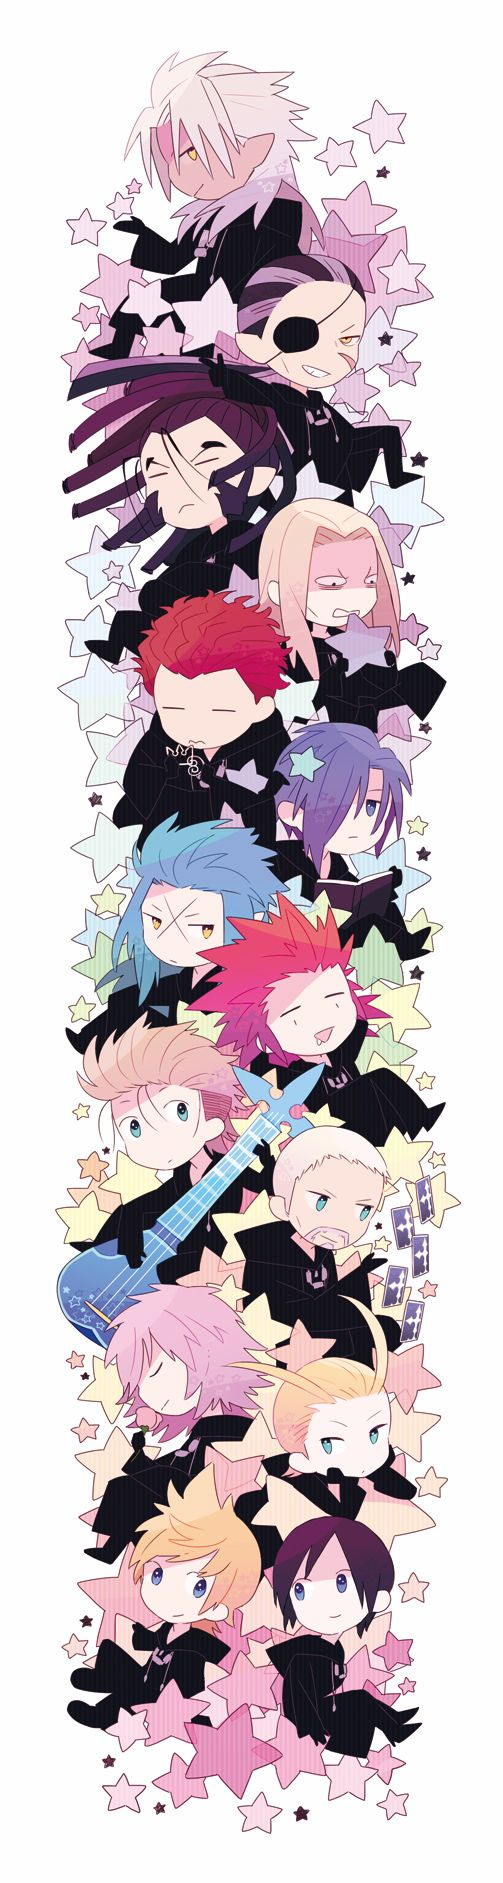 Awwww. Chibi Organization XIII, Kingdom Hearts 358/2 Days ...this would make an excellent bookmark